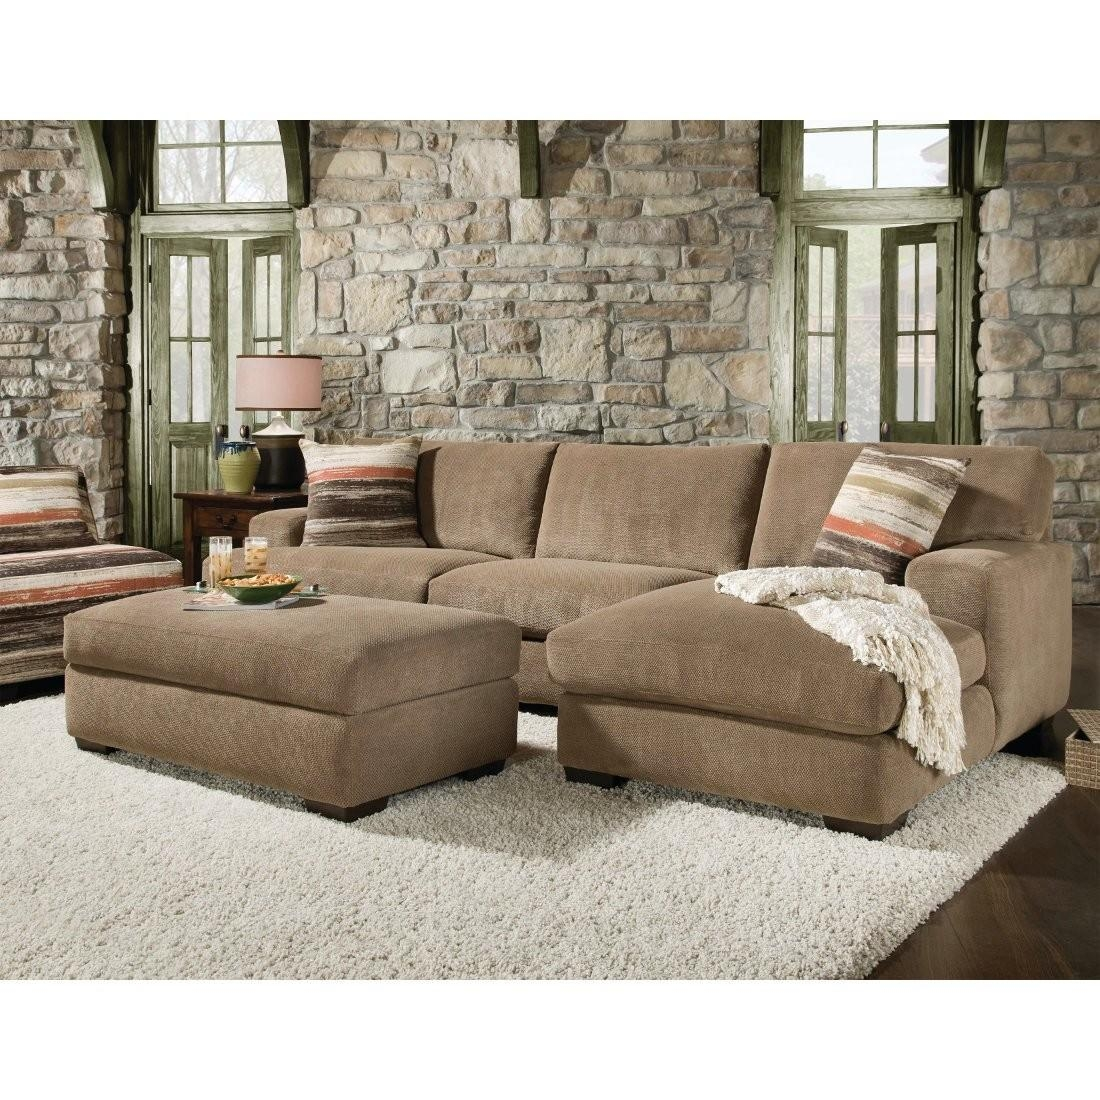 2 Piece Sectional Sofa With Chaise Design | Homesfeed In Small 2 Piece Sectional Sofas (View 9 of 23)